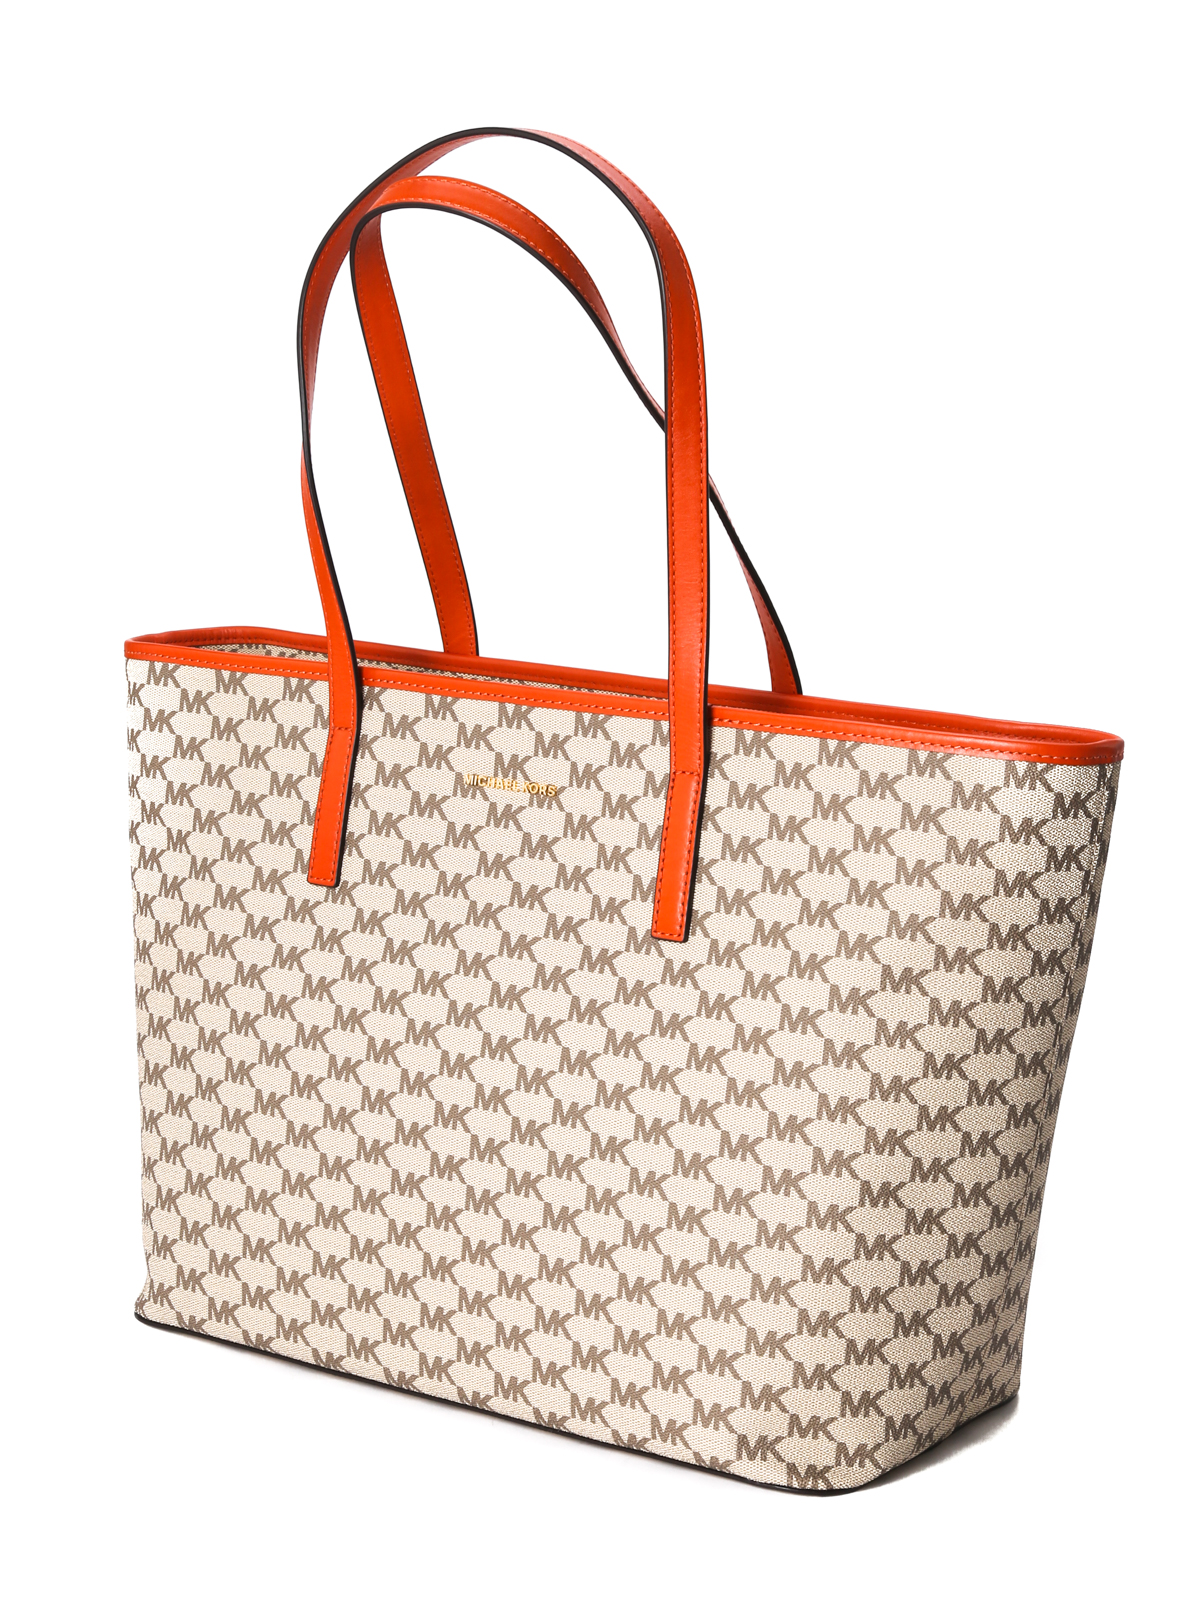 Online shopping for tote bags